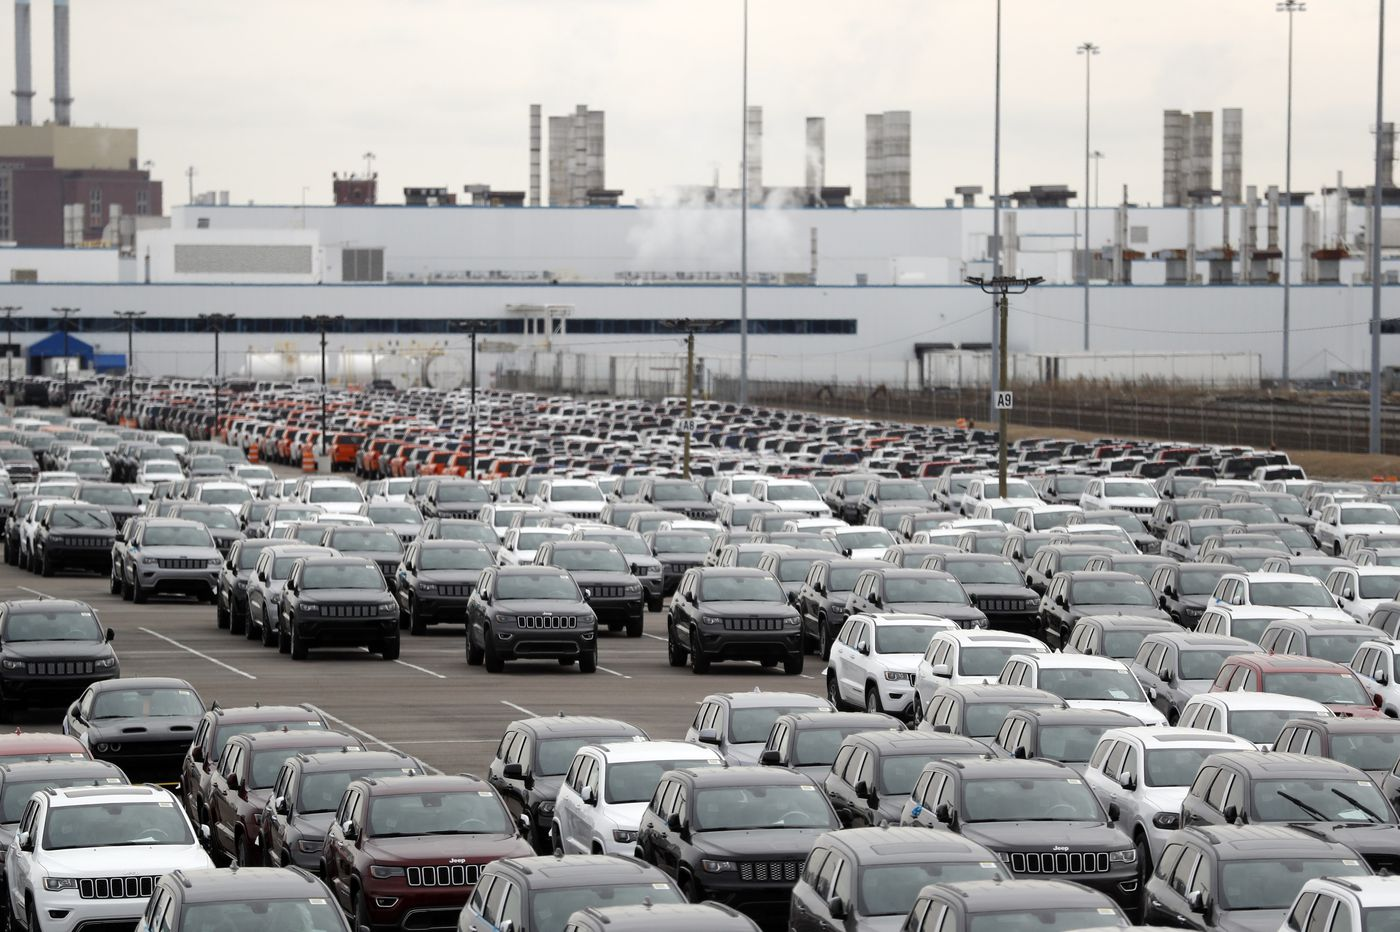 UAW workers vote to authorize strikes against GM, Ford, and Fiat Chrysler